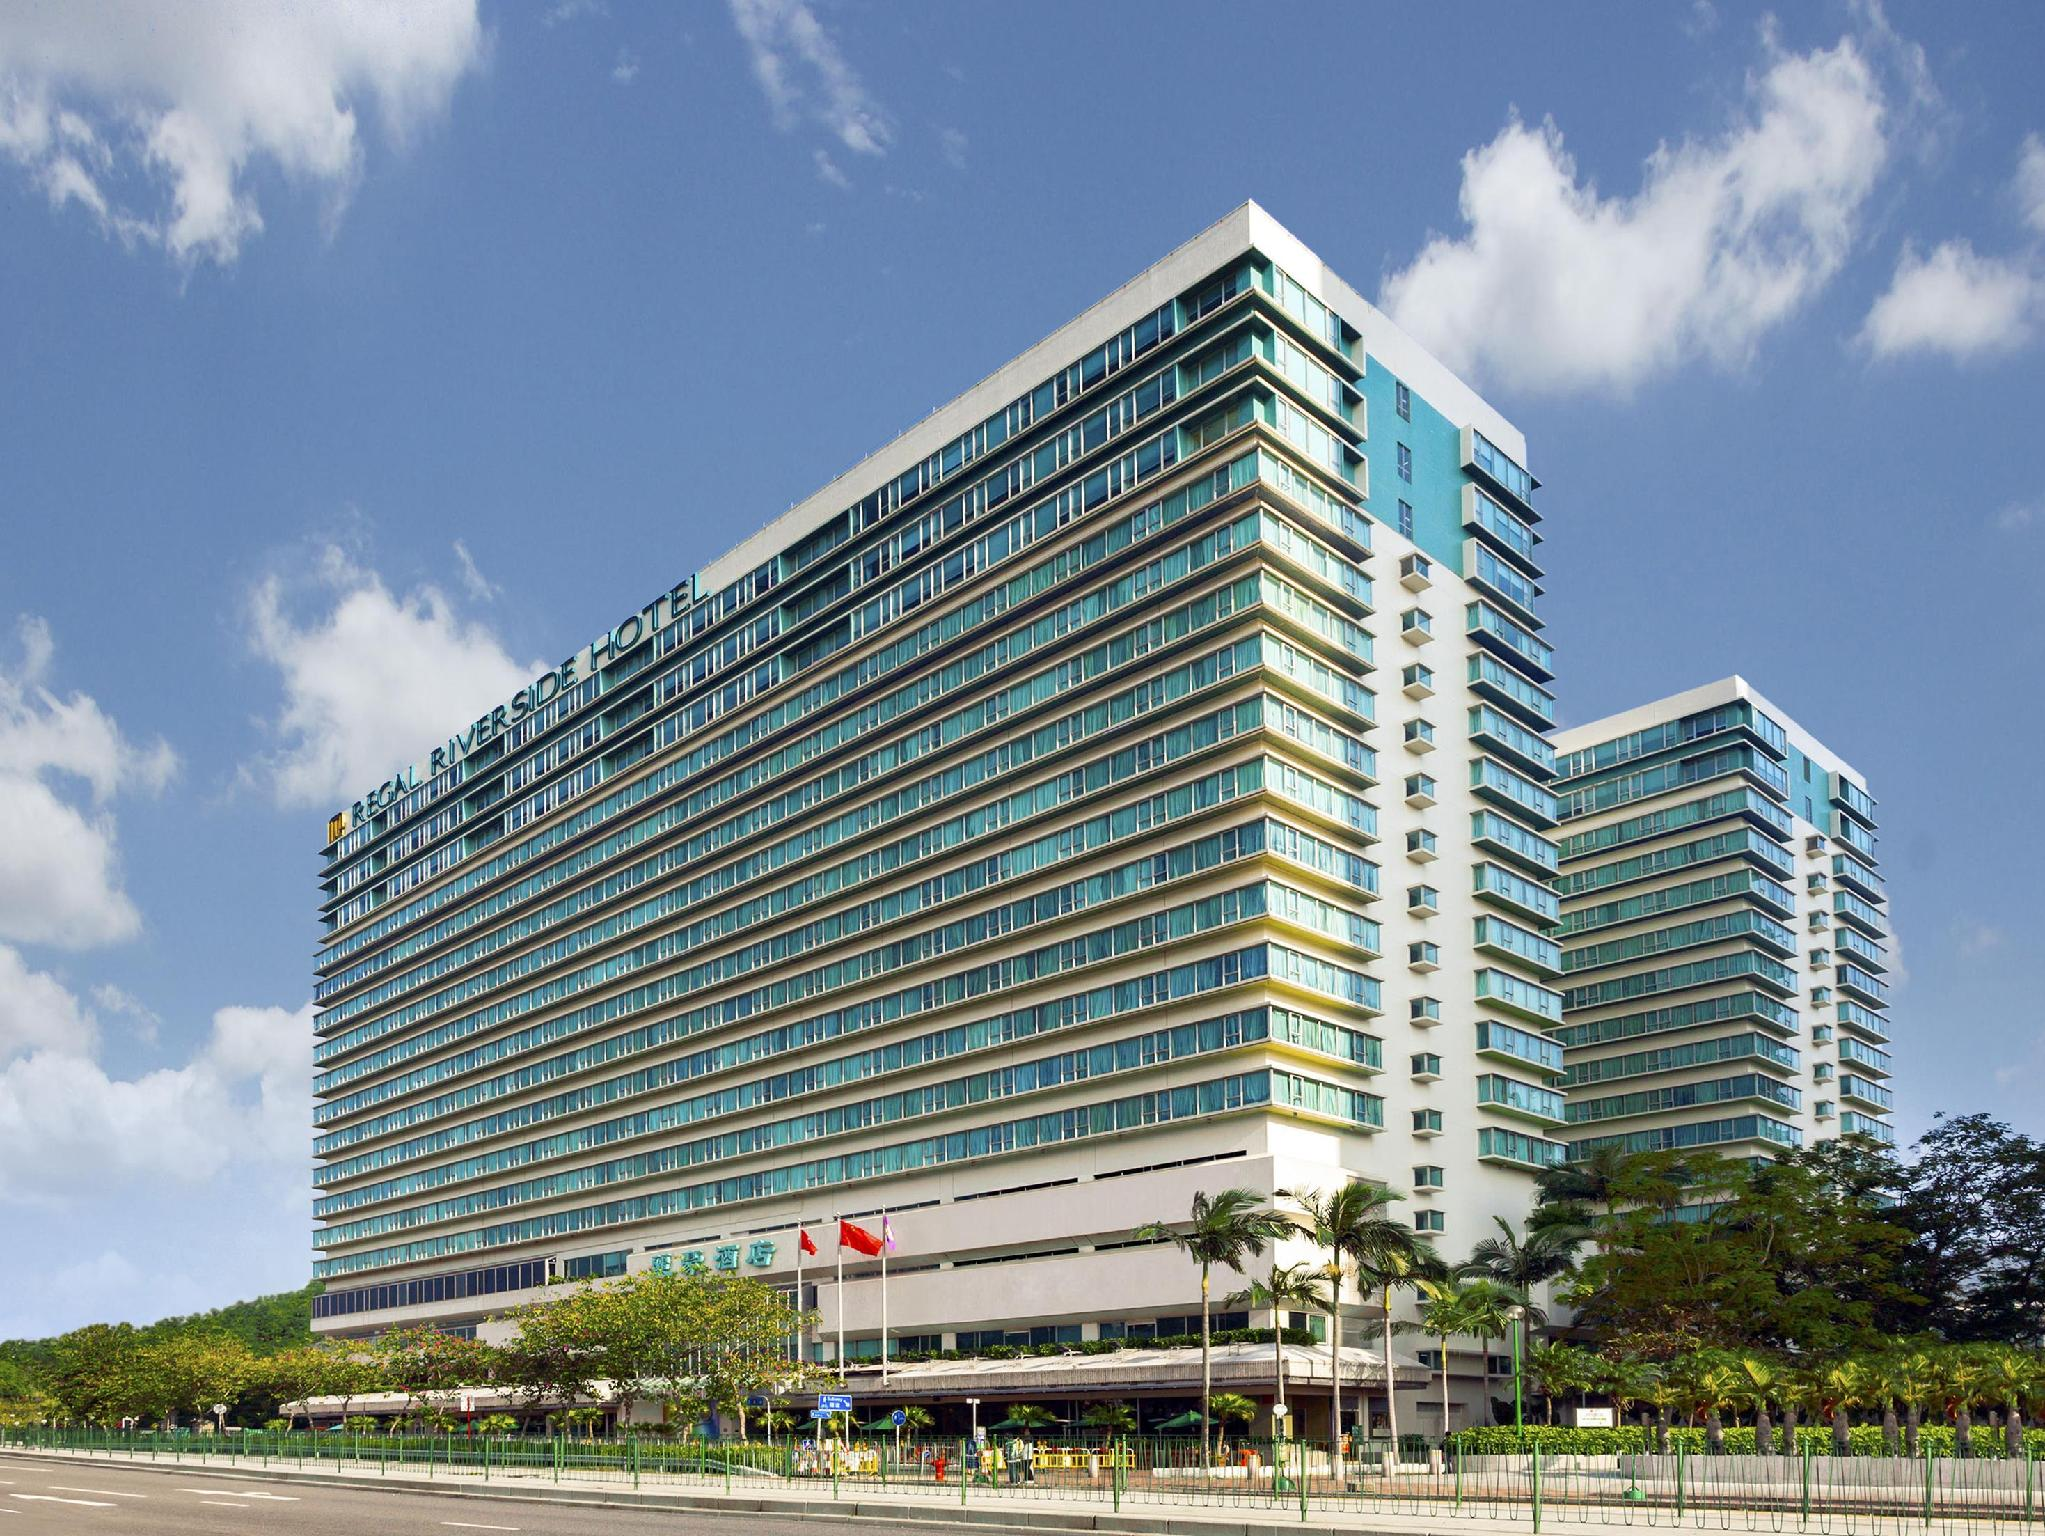 Regal Riverside Hotel